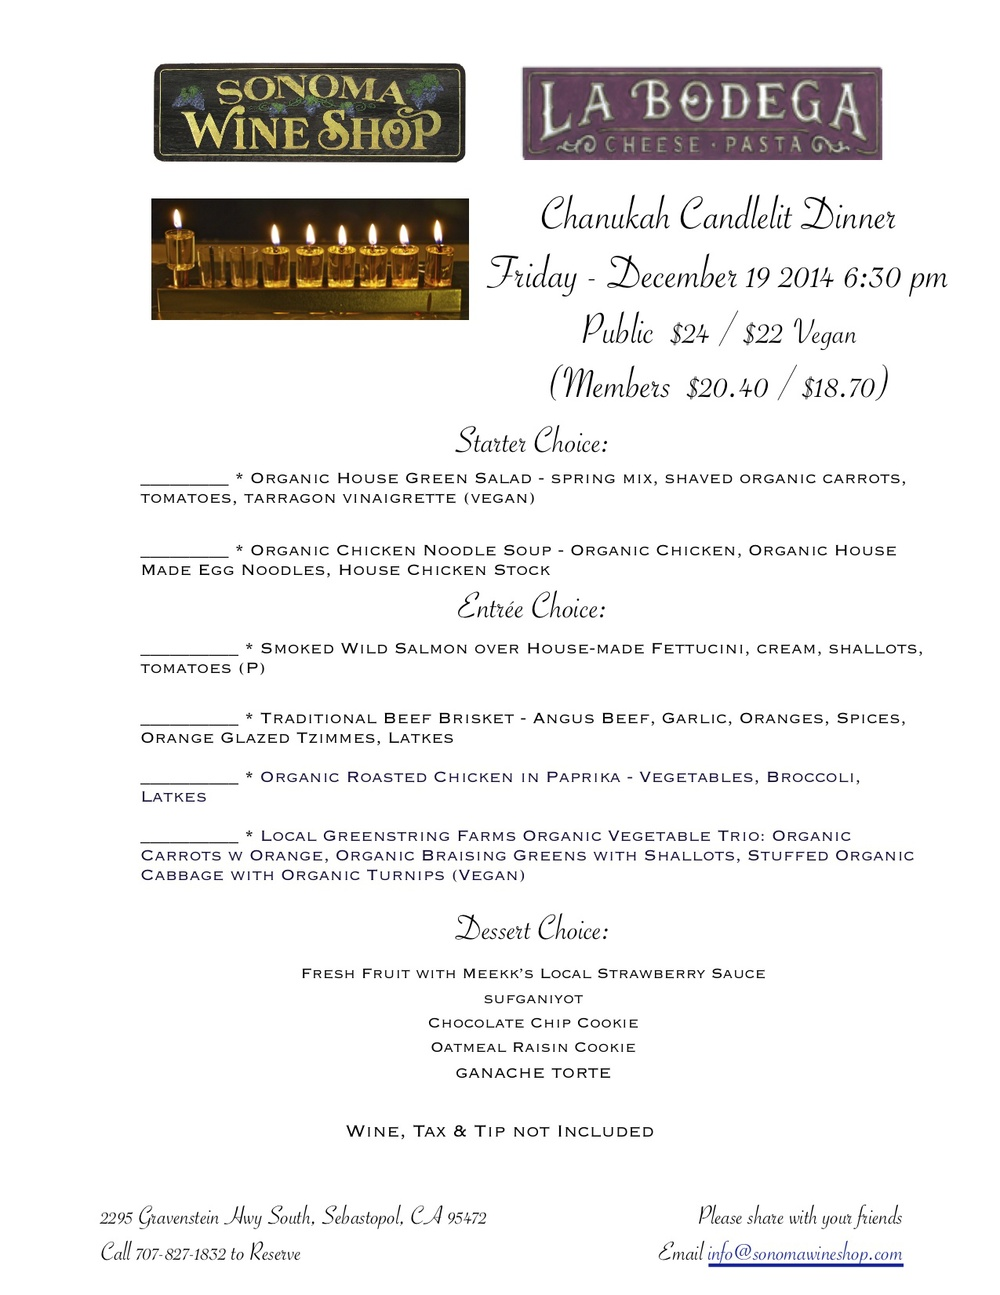 chanukah menu dec 19 2014.jpg